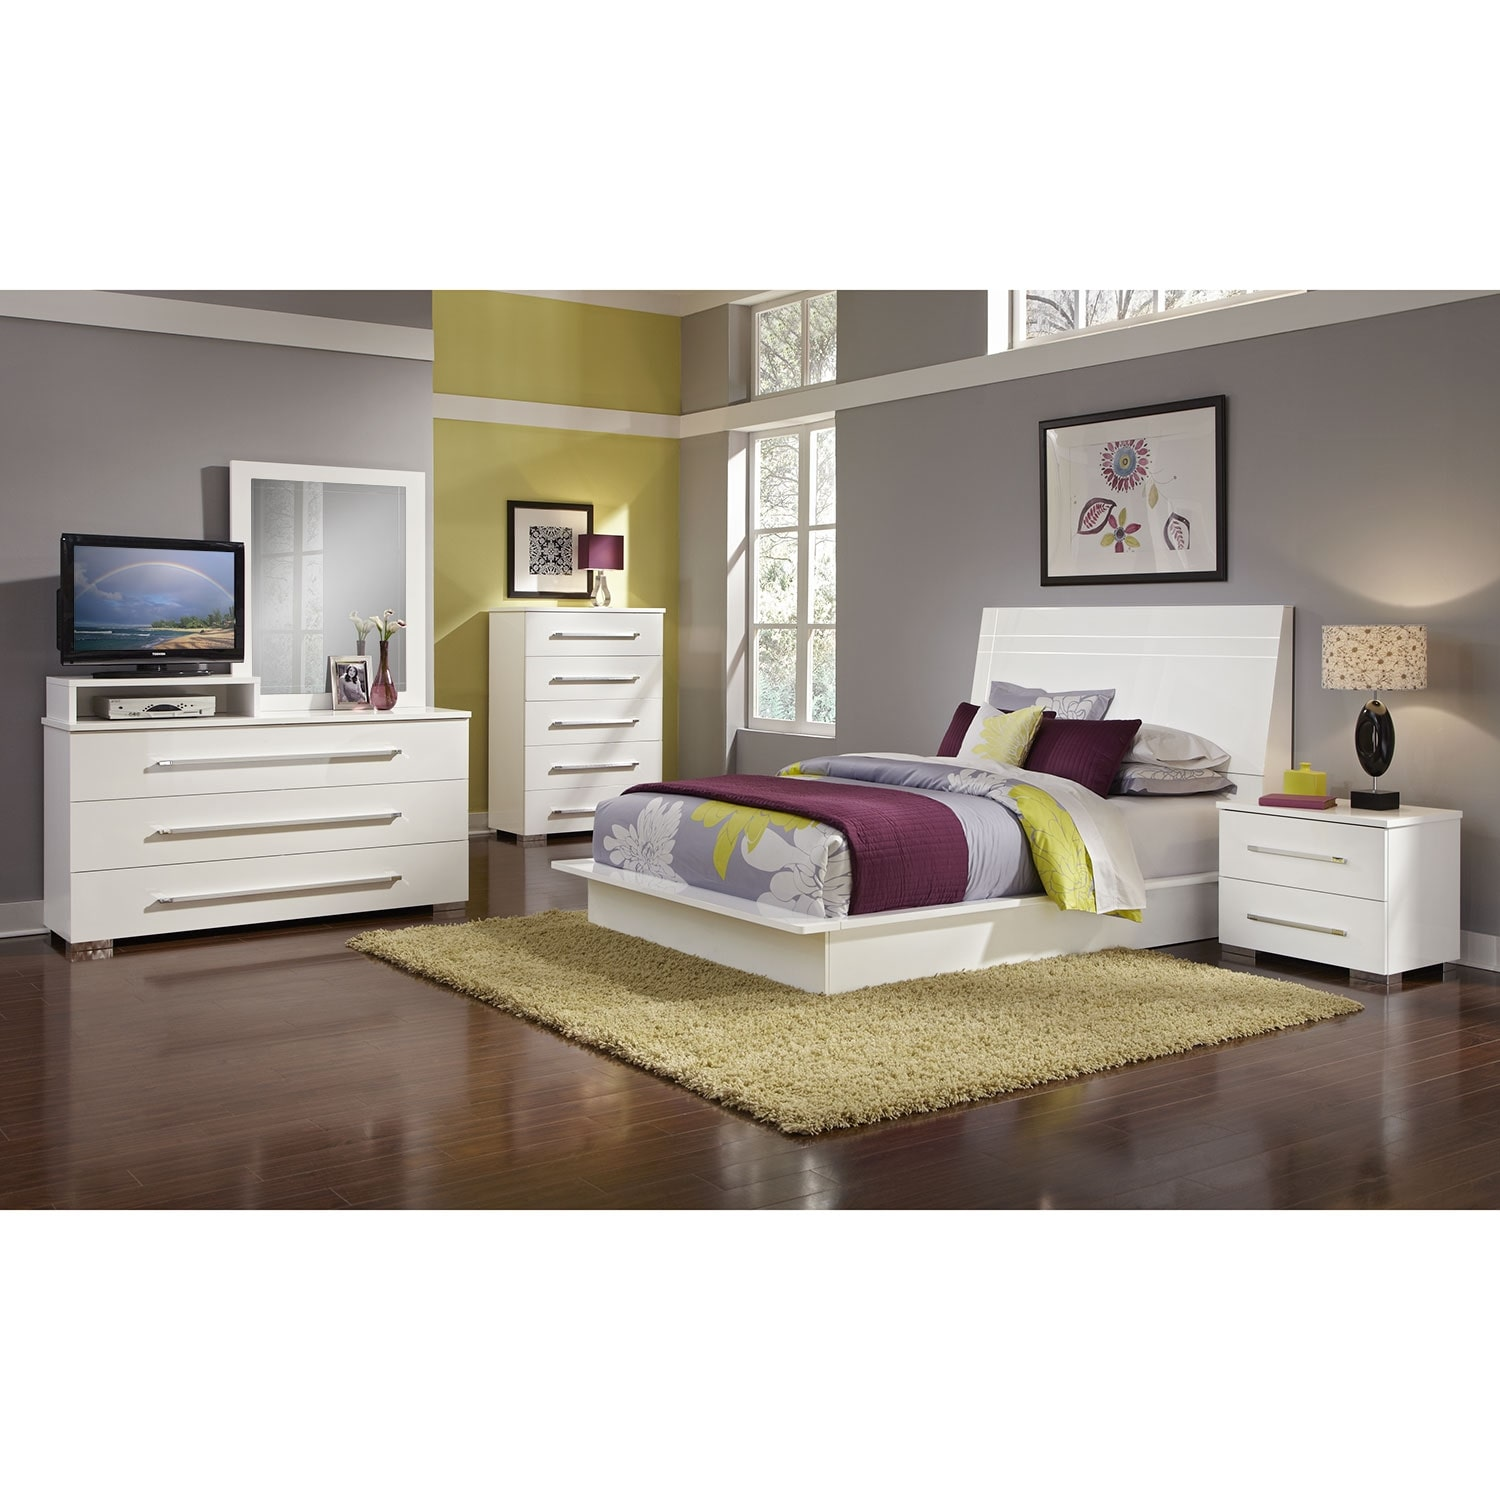 Dimora 7-Piece Queen Panel Bedroom Set with Media Dresser - White